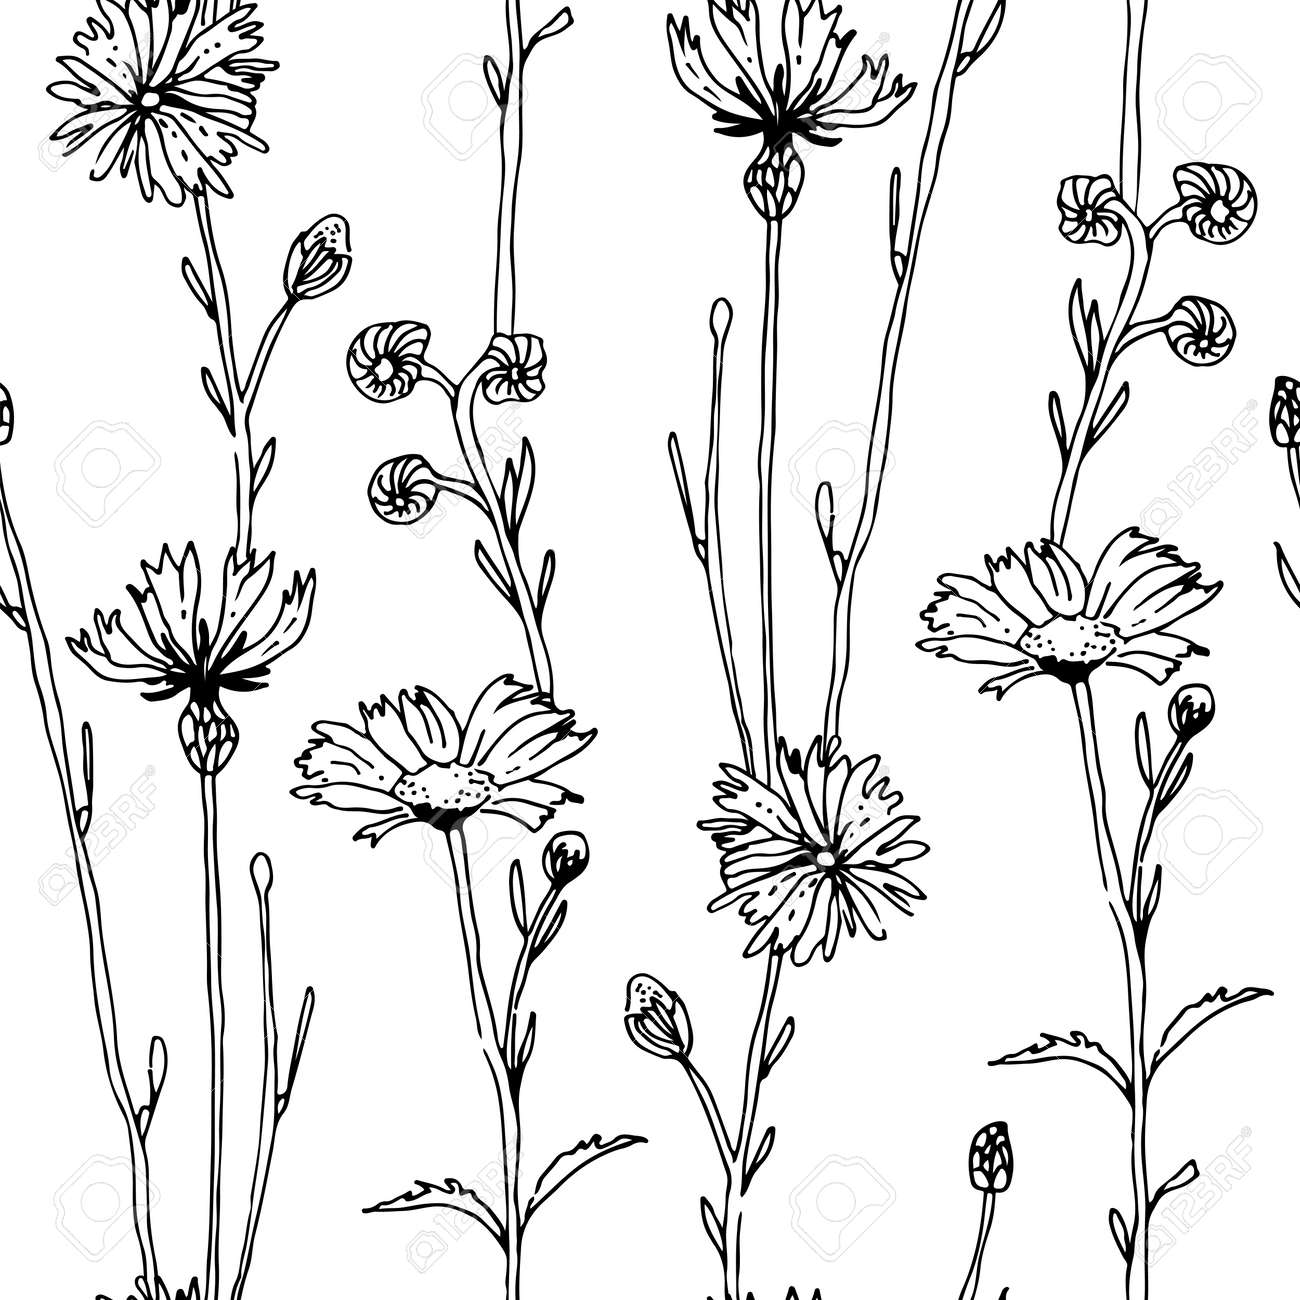 Herbs and flowers seamless vector pattern, isolated on white background - 166396006